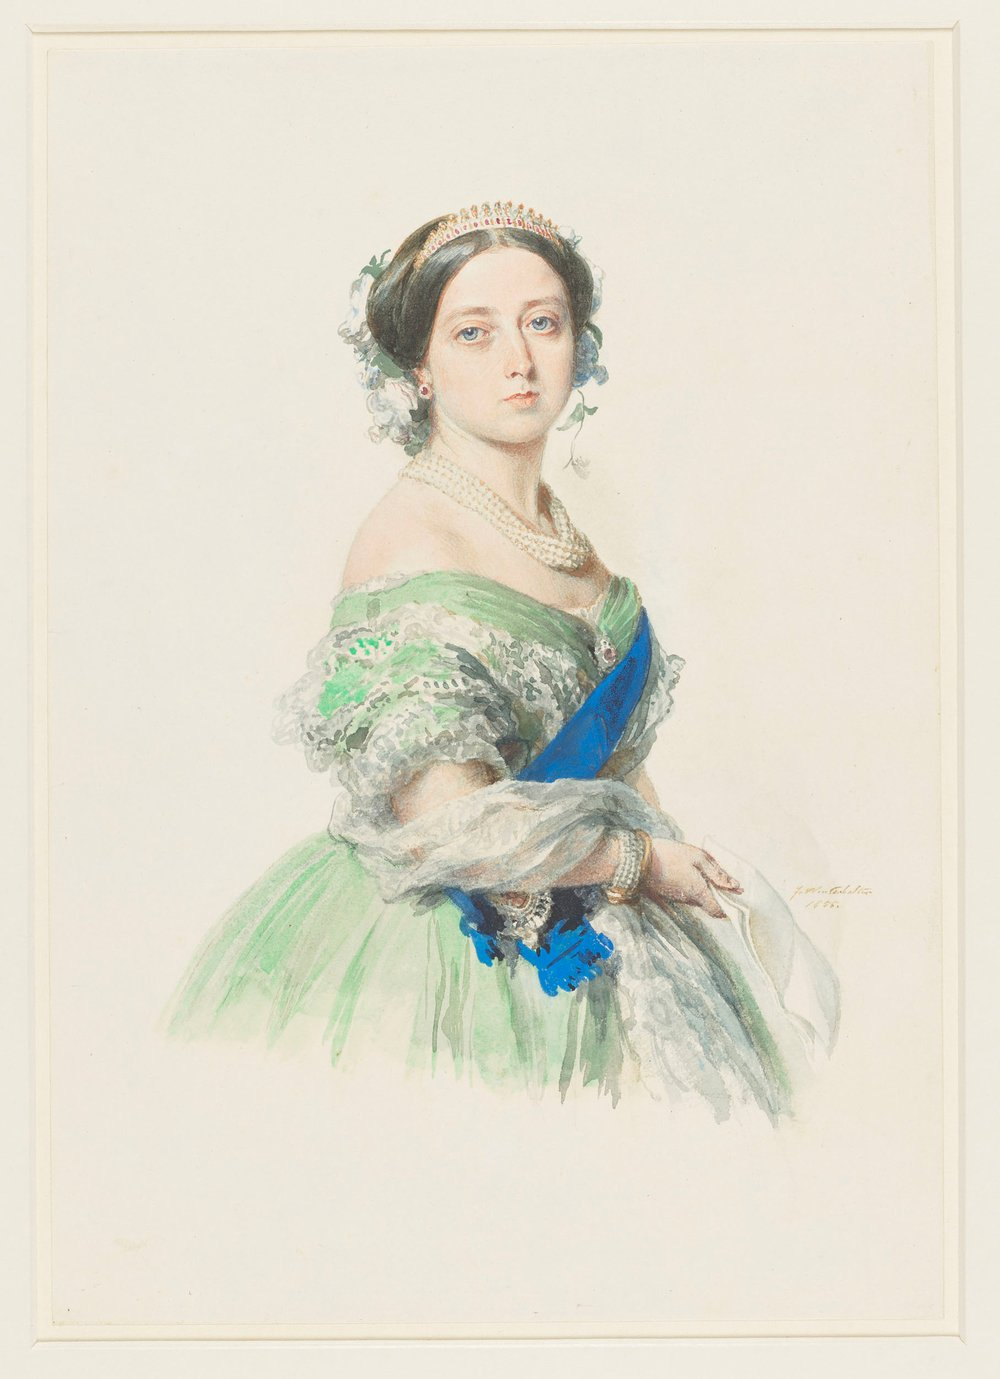 A three-quarter lengthwatercolour portraitof Queen Victoria, facing front, wearing a green dress with the ribbon and star of the Garter, and holding a paper. Signed and dated at bottom right.  In June1855 Queen Victoria recordedin